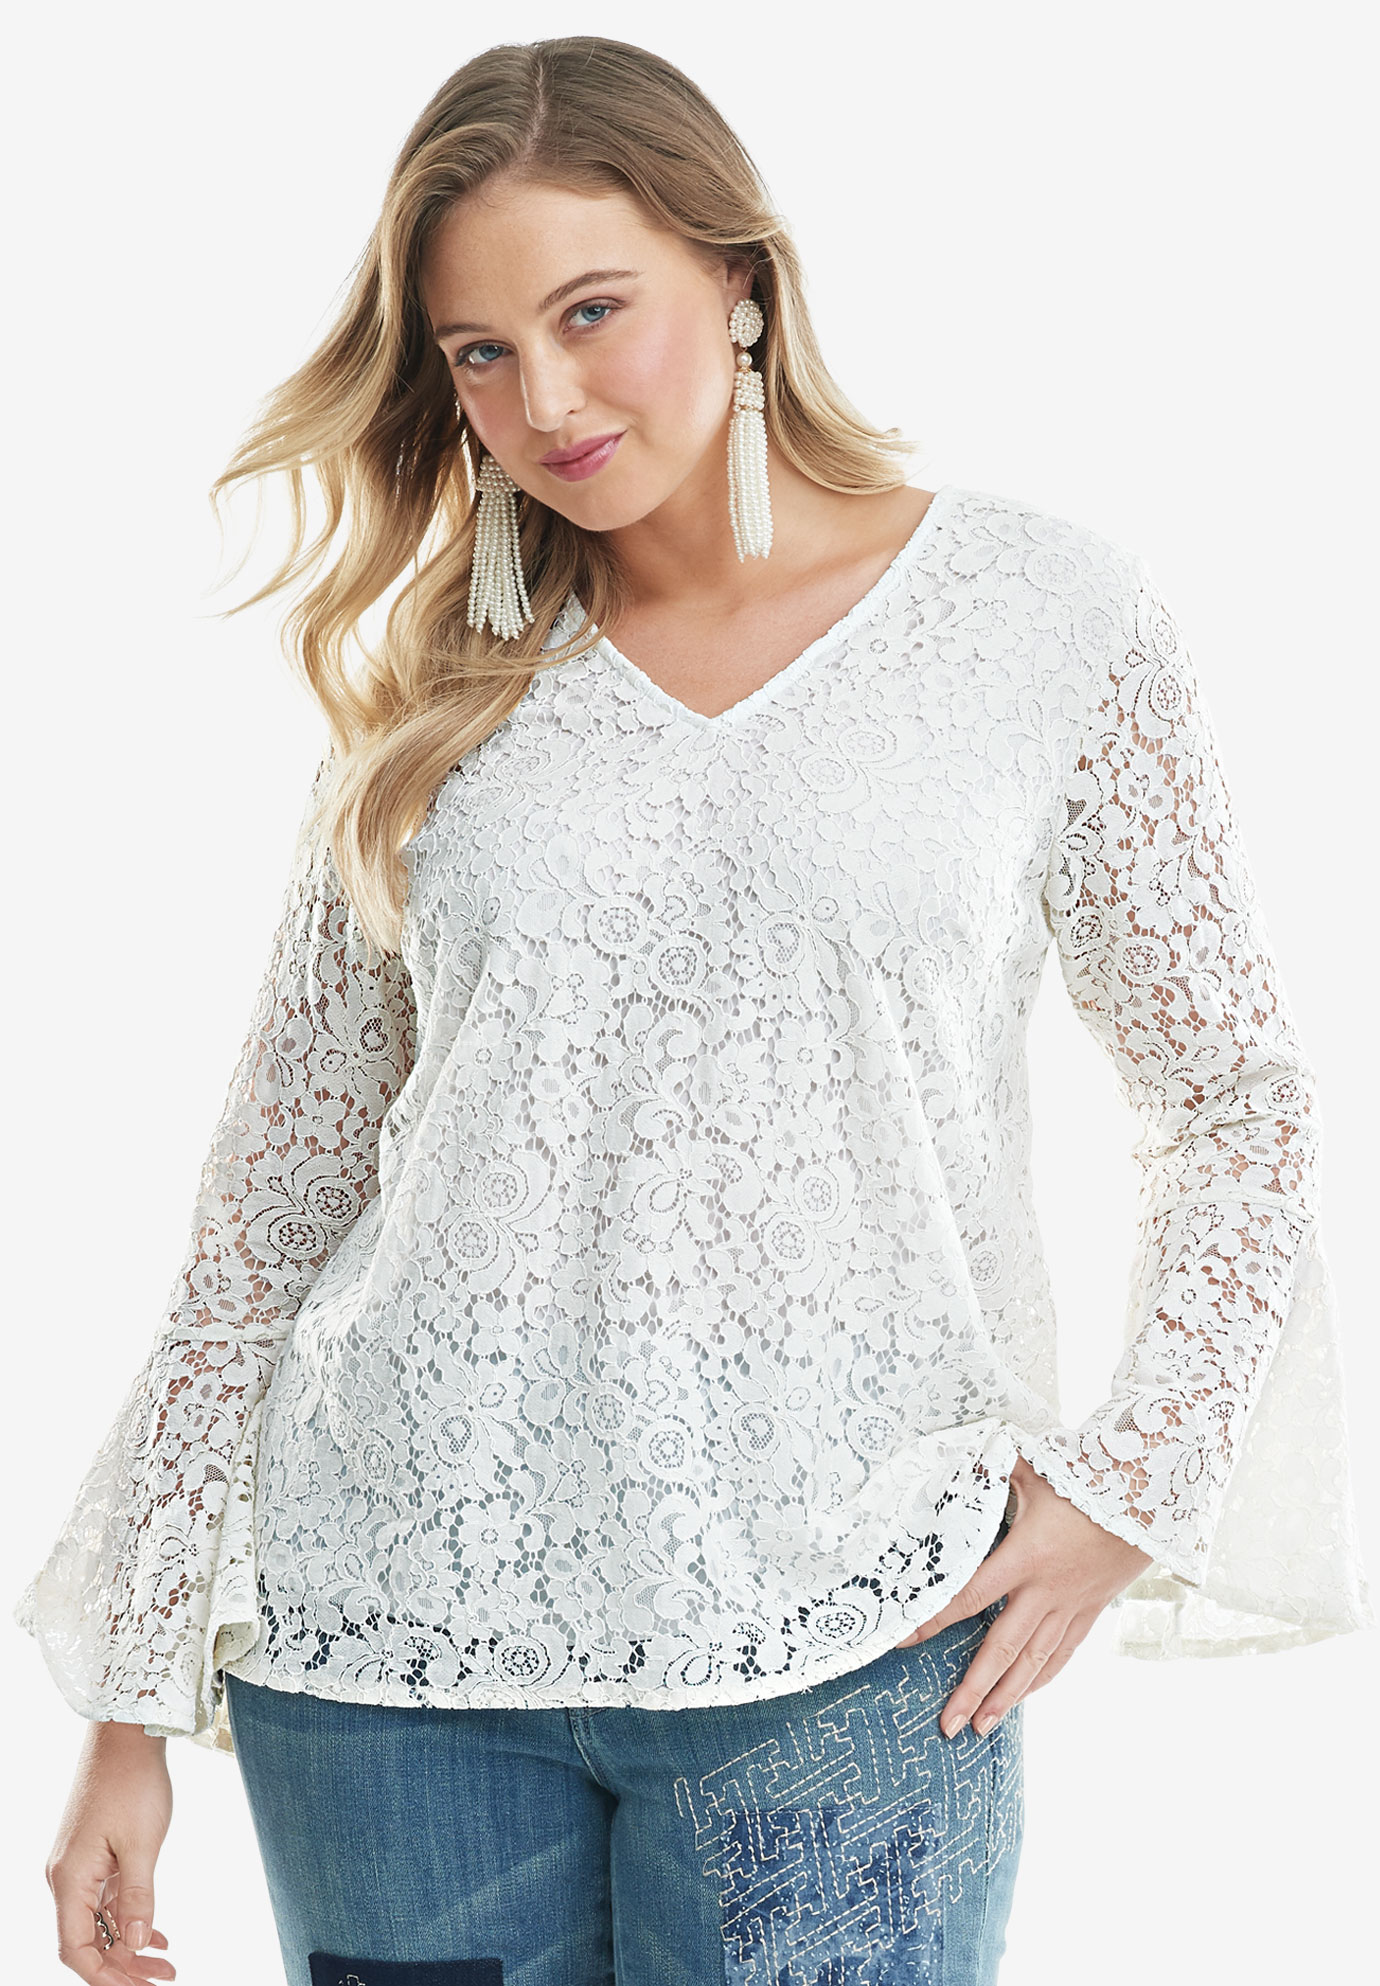 Lace Bell Sleeve Blouse Plus Size Shirts Blouses Full Beauty